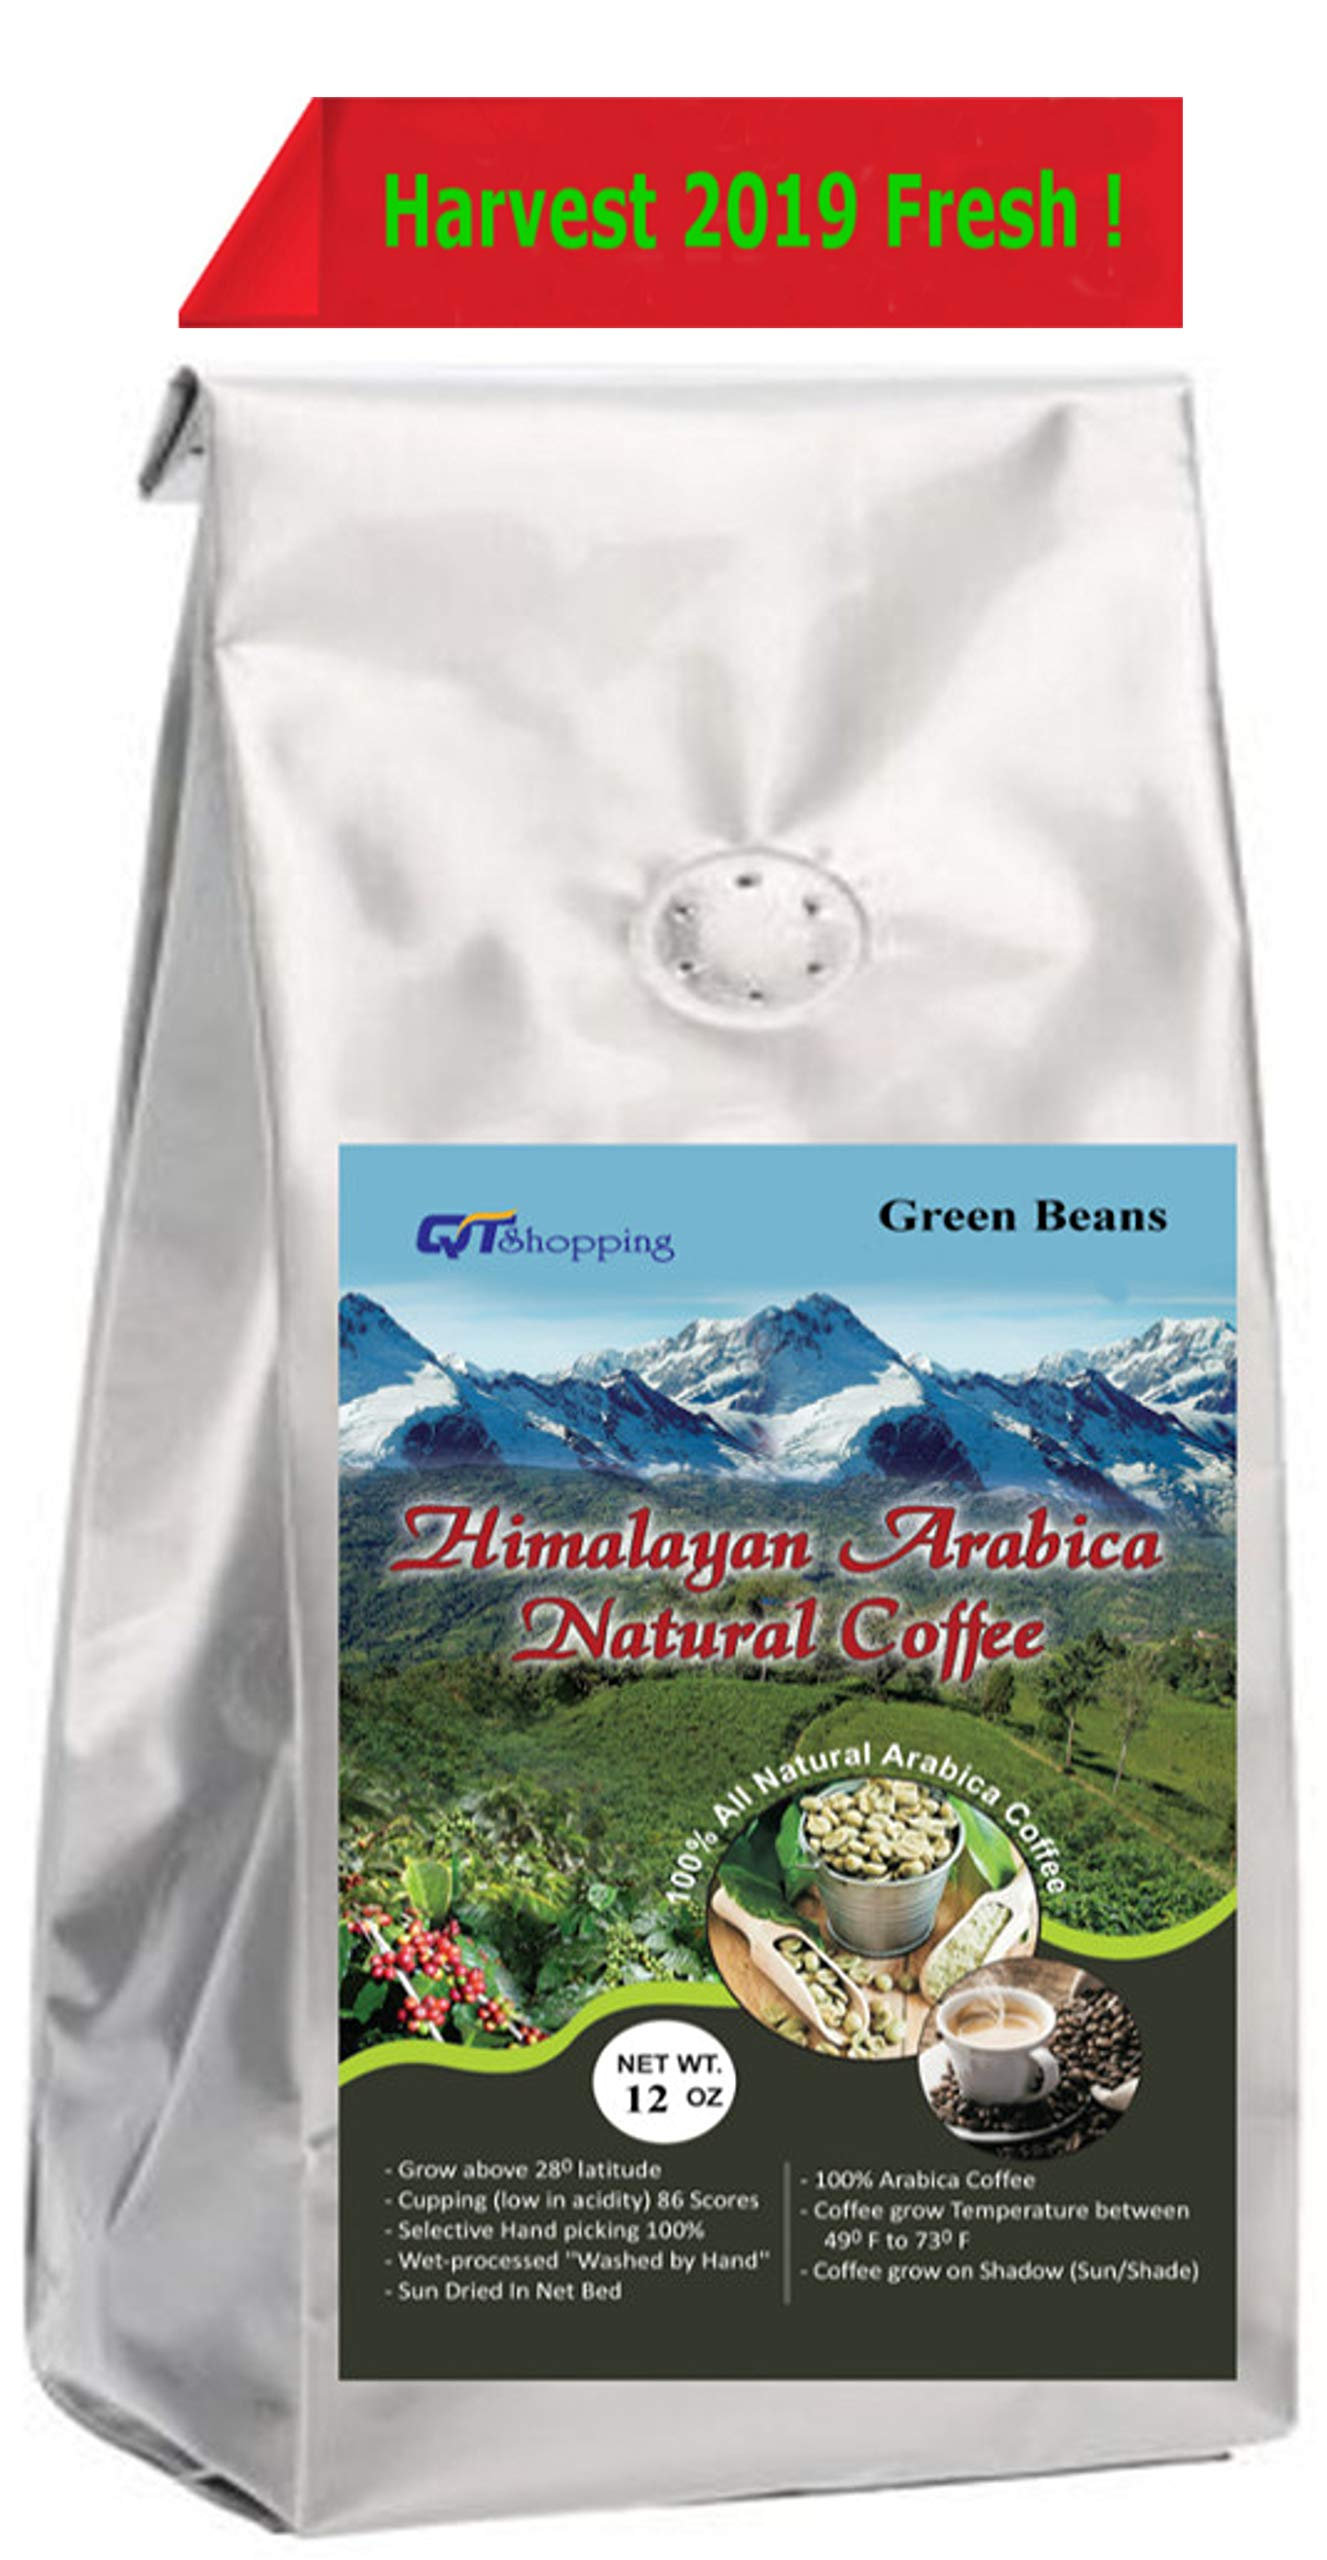 Himalayan Arabica Organic Unroasted Whole Coffee Green Beans - Cupping Score 90 (Value Pack) 100% Hand Picked Sun & Net Dried - World's Best Natural Coffee Grow on High Altitude Of Himalayas, Nepal